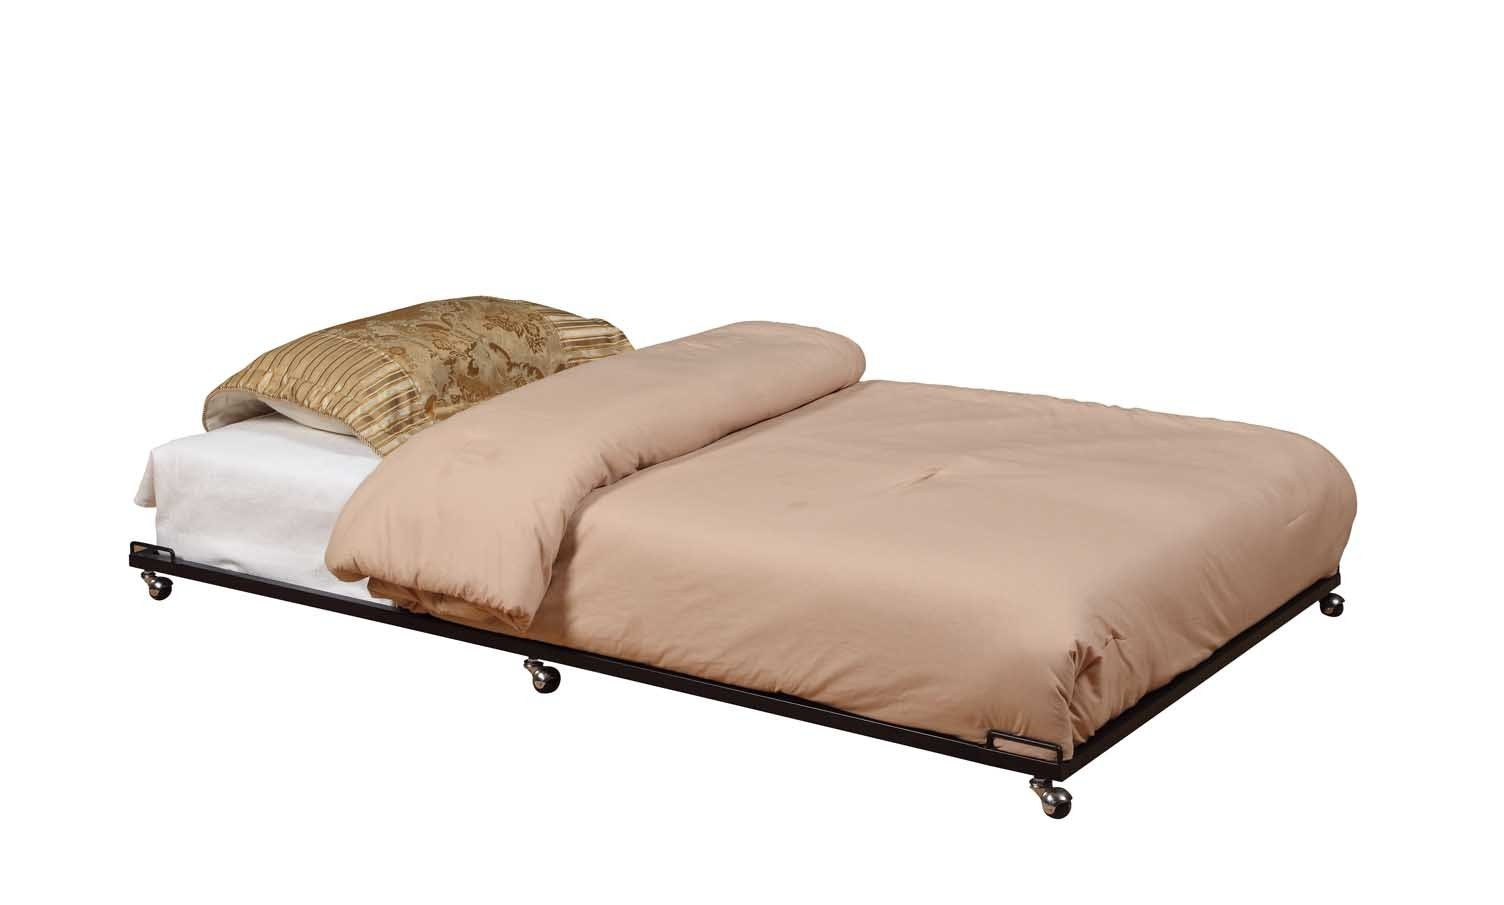 Kings Brand Furniture - Twin Size Black Metal Roll Out Trundle Bed Frame for Daybed by 2K Furniture Designs